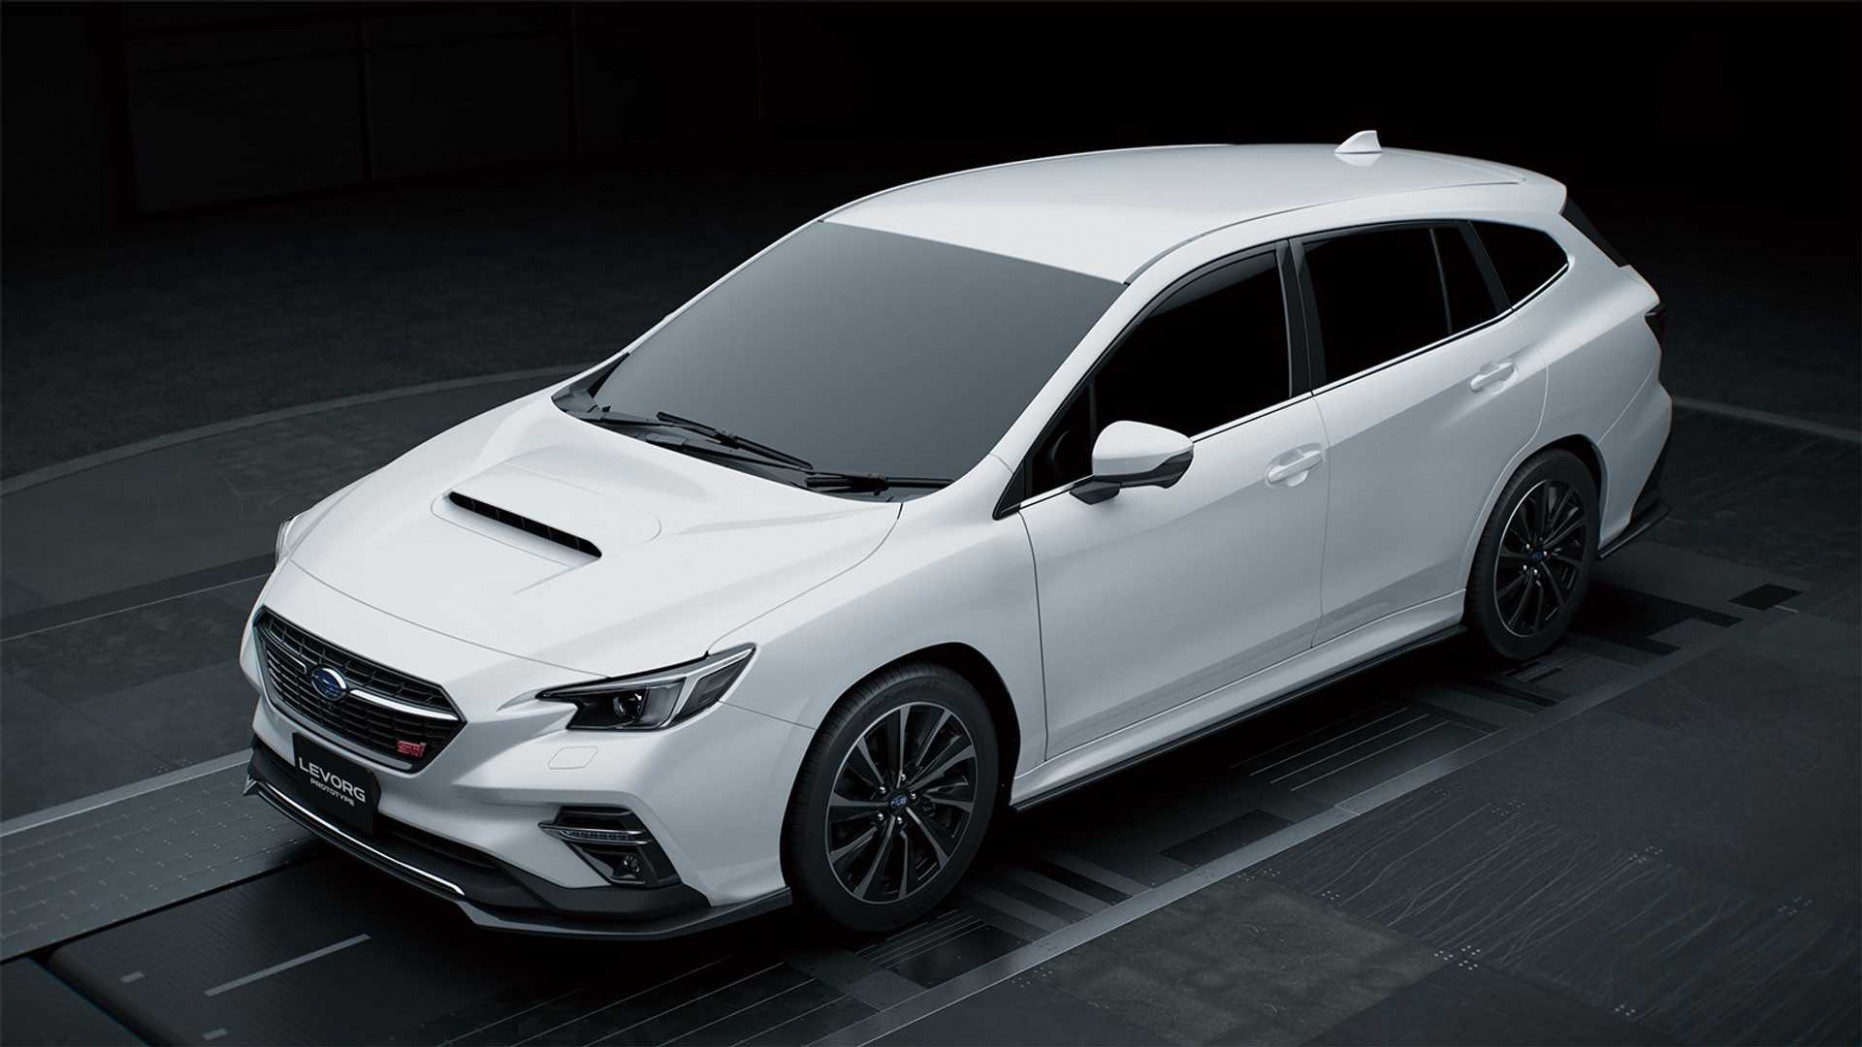 Redesign and Concept When Will The 2022 Subaru Legacy Go On Sale